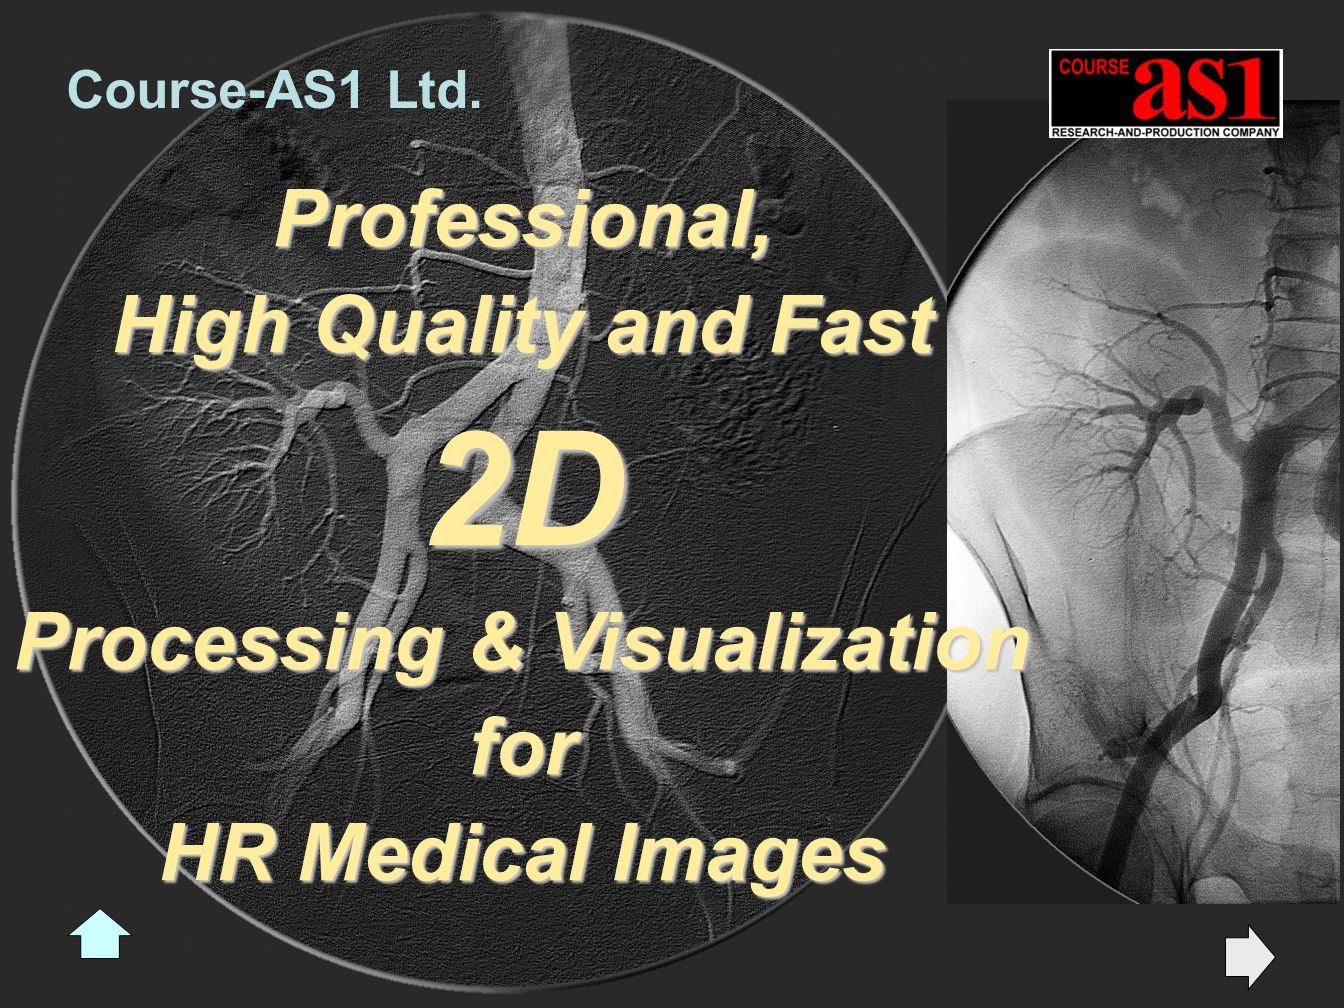 Professional, High Quality and Fast 2D Processing & Visualization for HR Medical Images Course-AS1 Ltd.